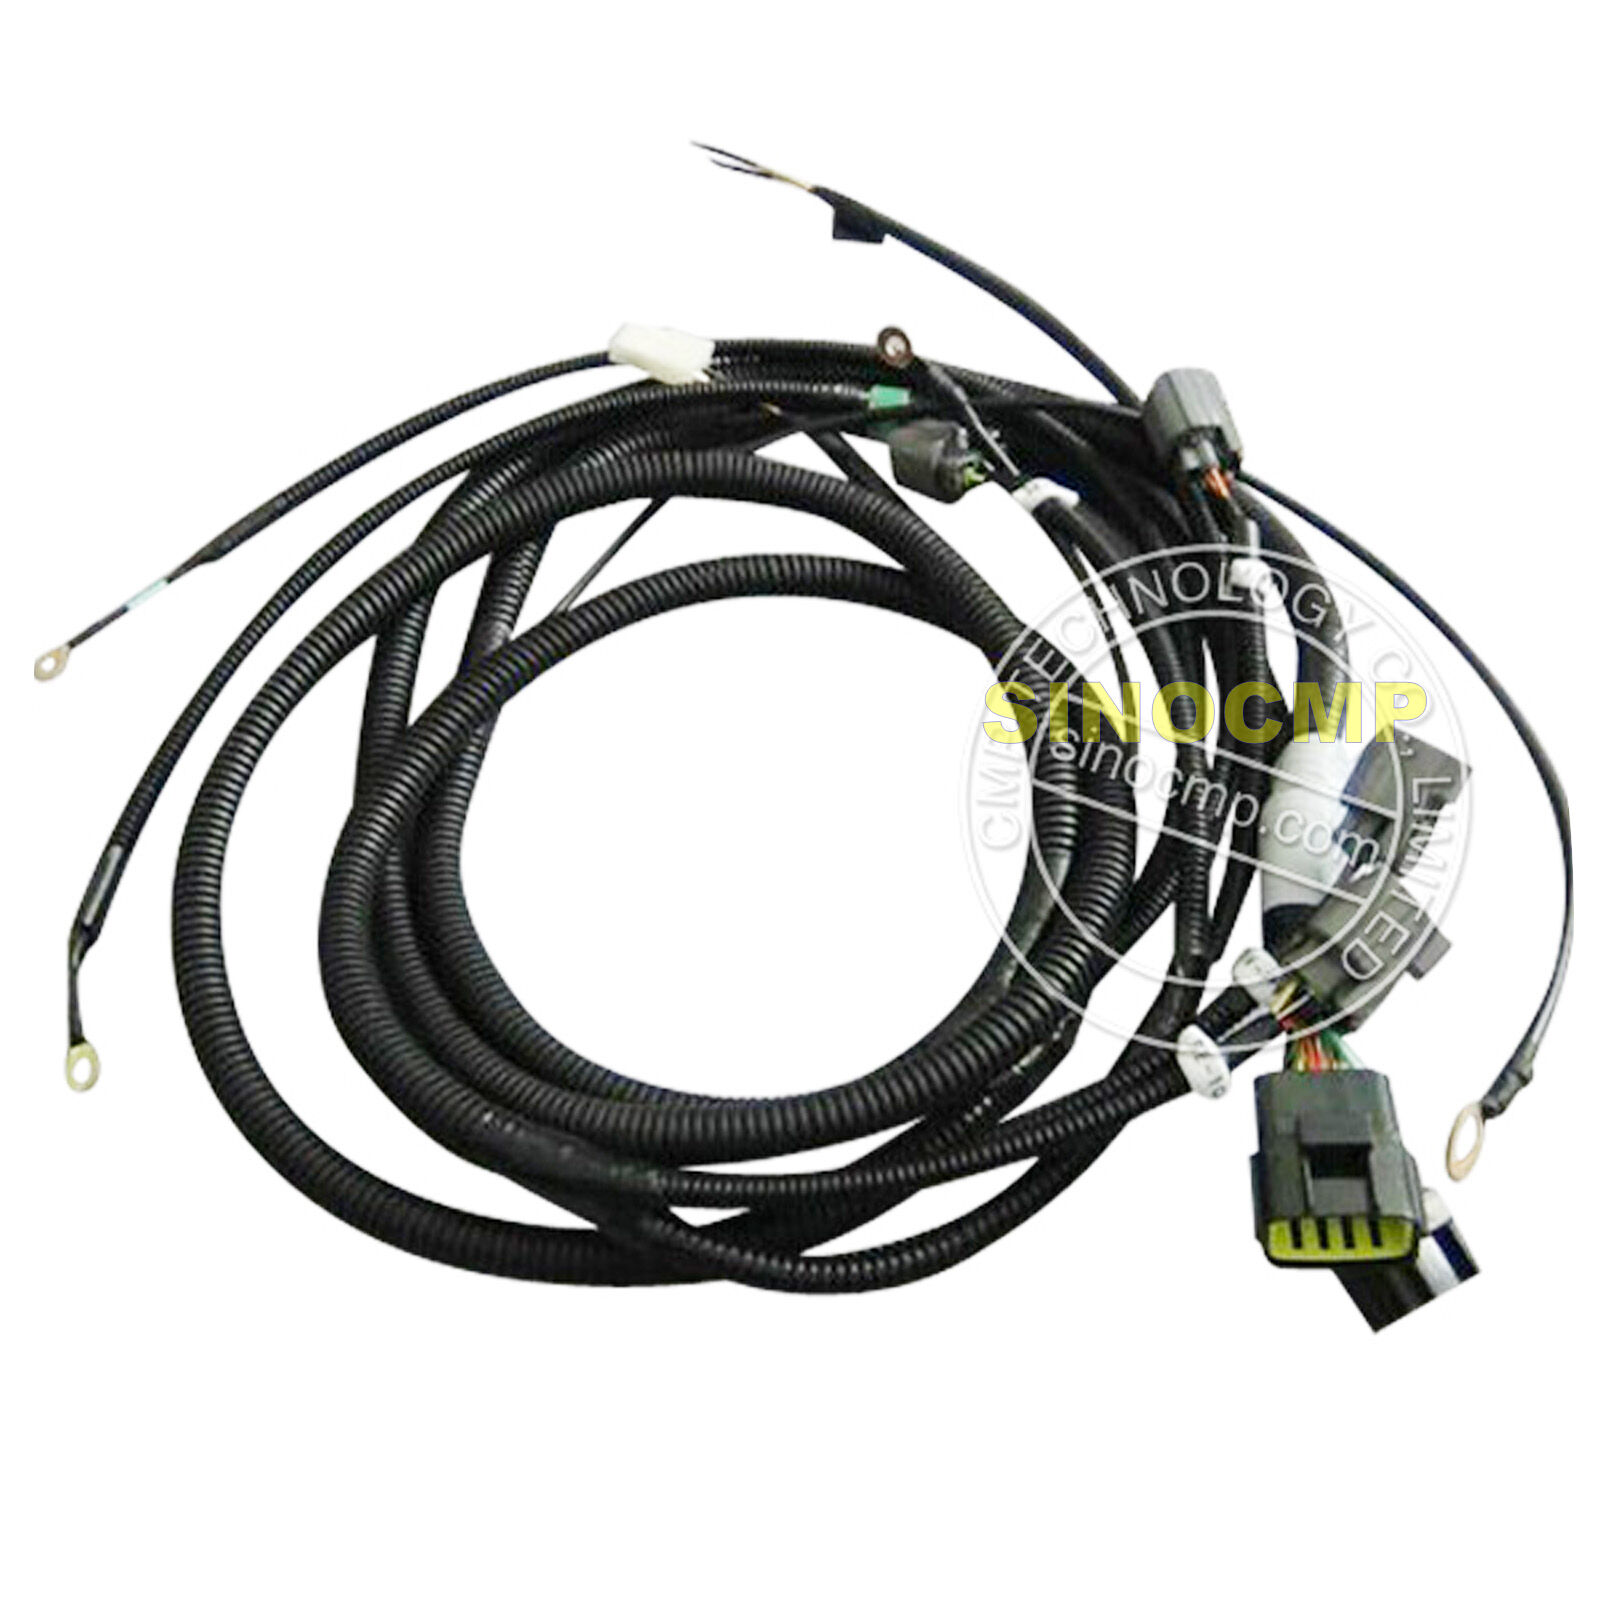 Sk200-3 Hydraulic Pump Wiring Harness for Kobelco Excavator Cable 3 Month  Warty   eBay